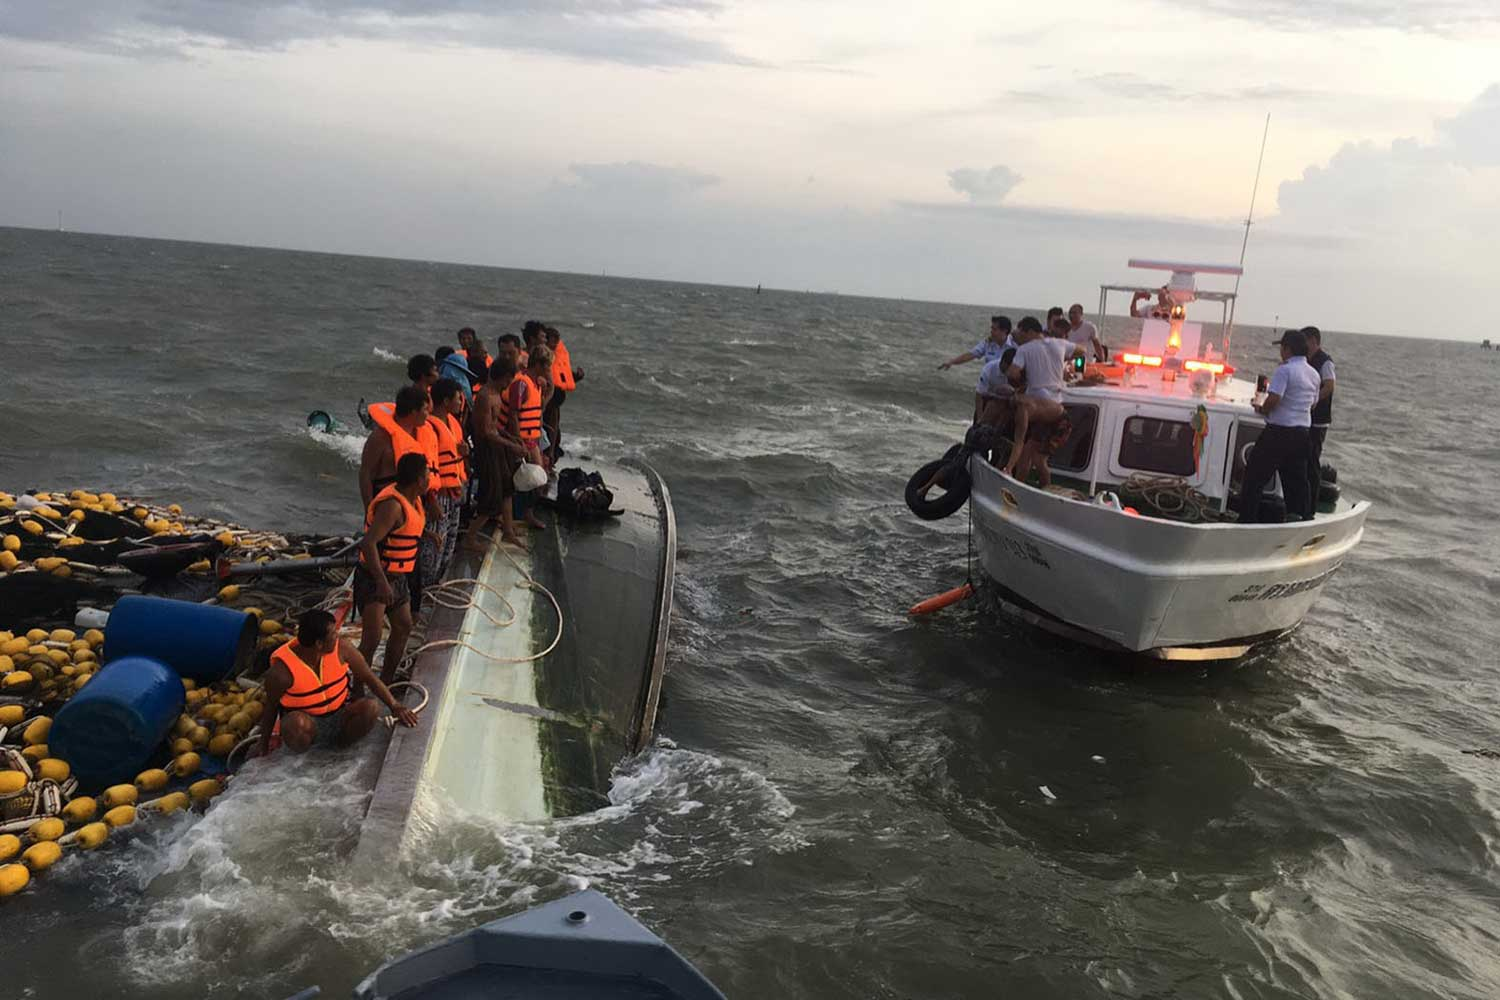 A fishing boat carrying 23 crew members capsizes at the mouth of the Chao Phraya River in Samut Prakan province on Monday evening. The boat was later salvaged on Tuesday morning and one crewman who was drowned and went missing was found trapped inside. (Photo by Sutthiwit Chayutworakan)